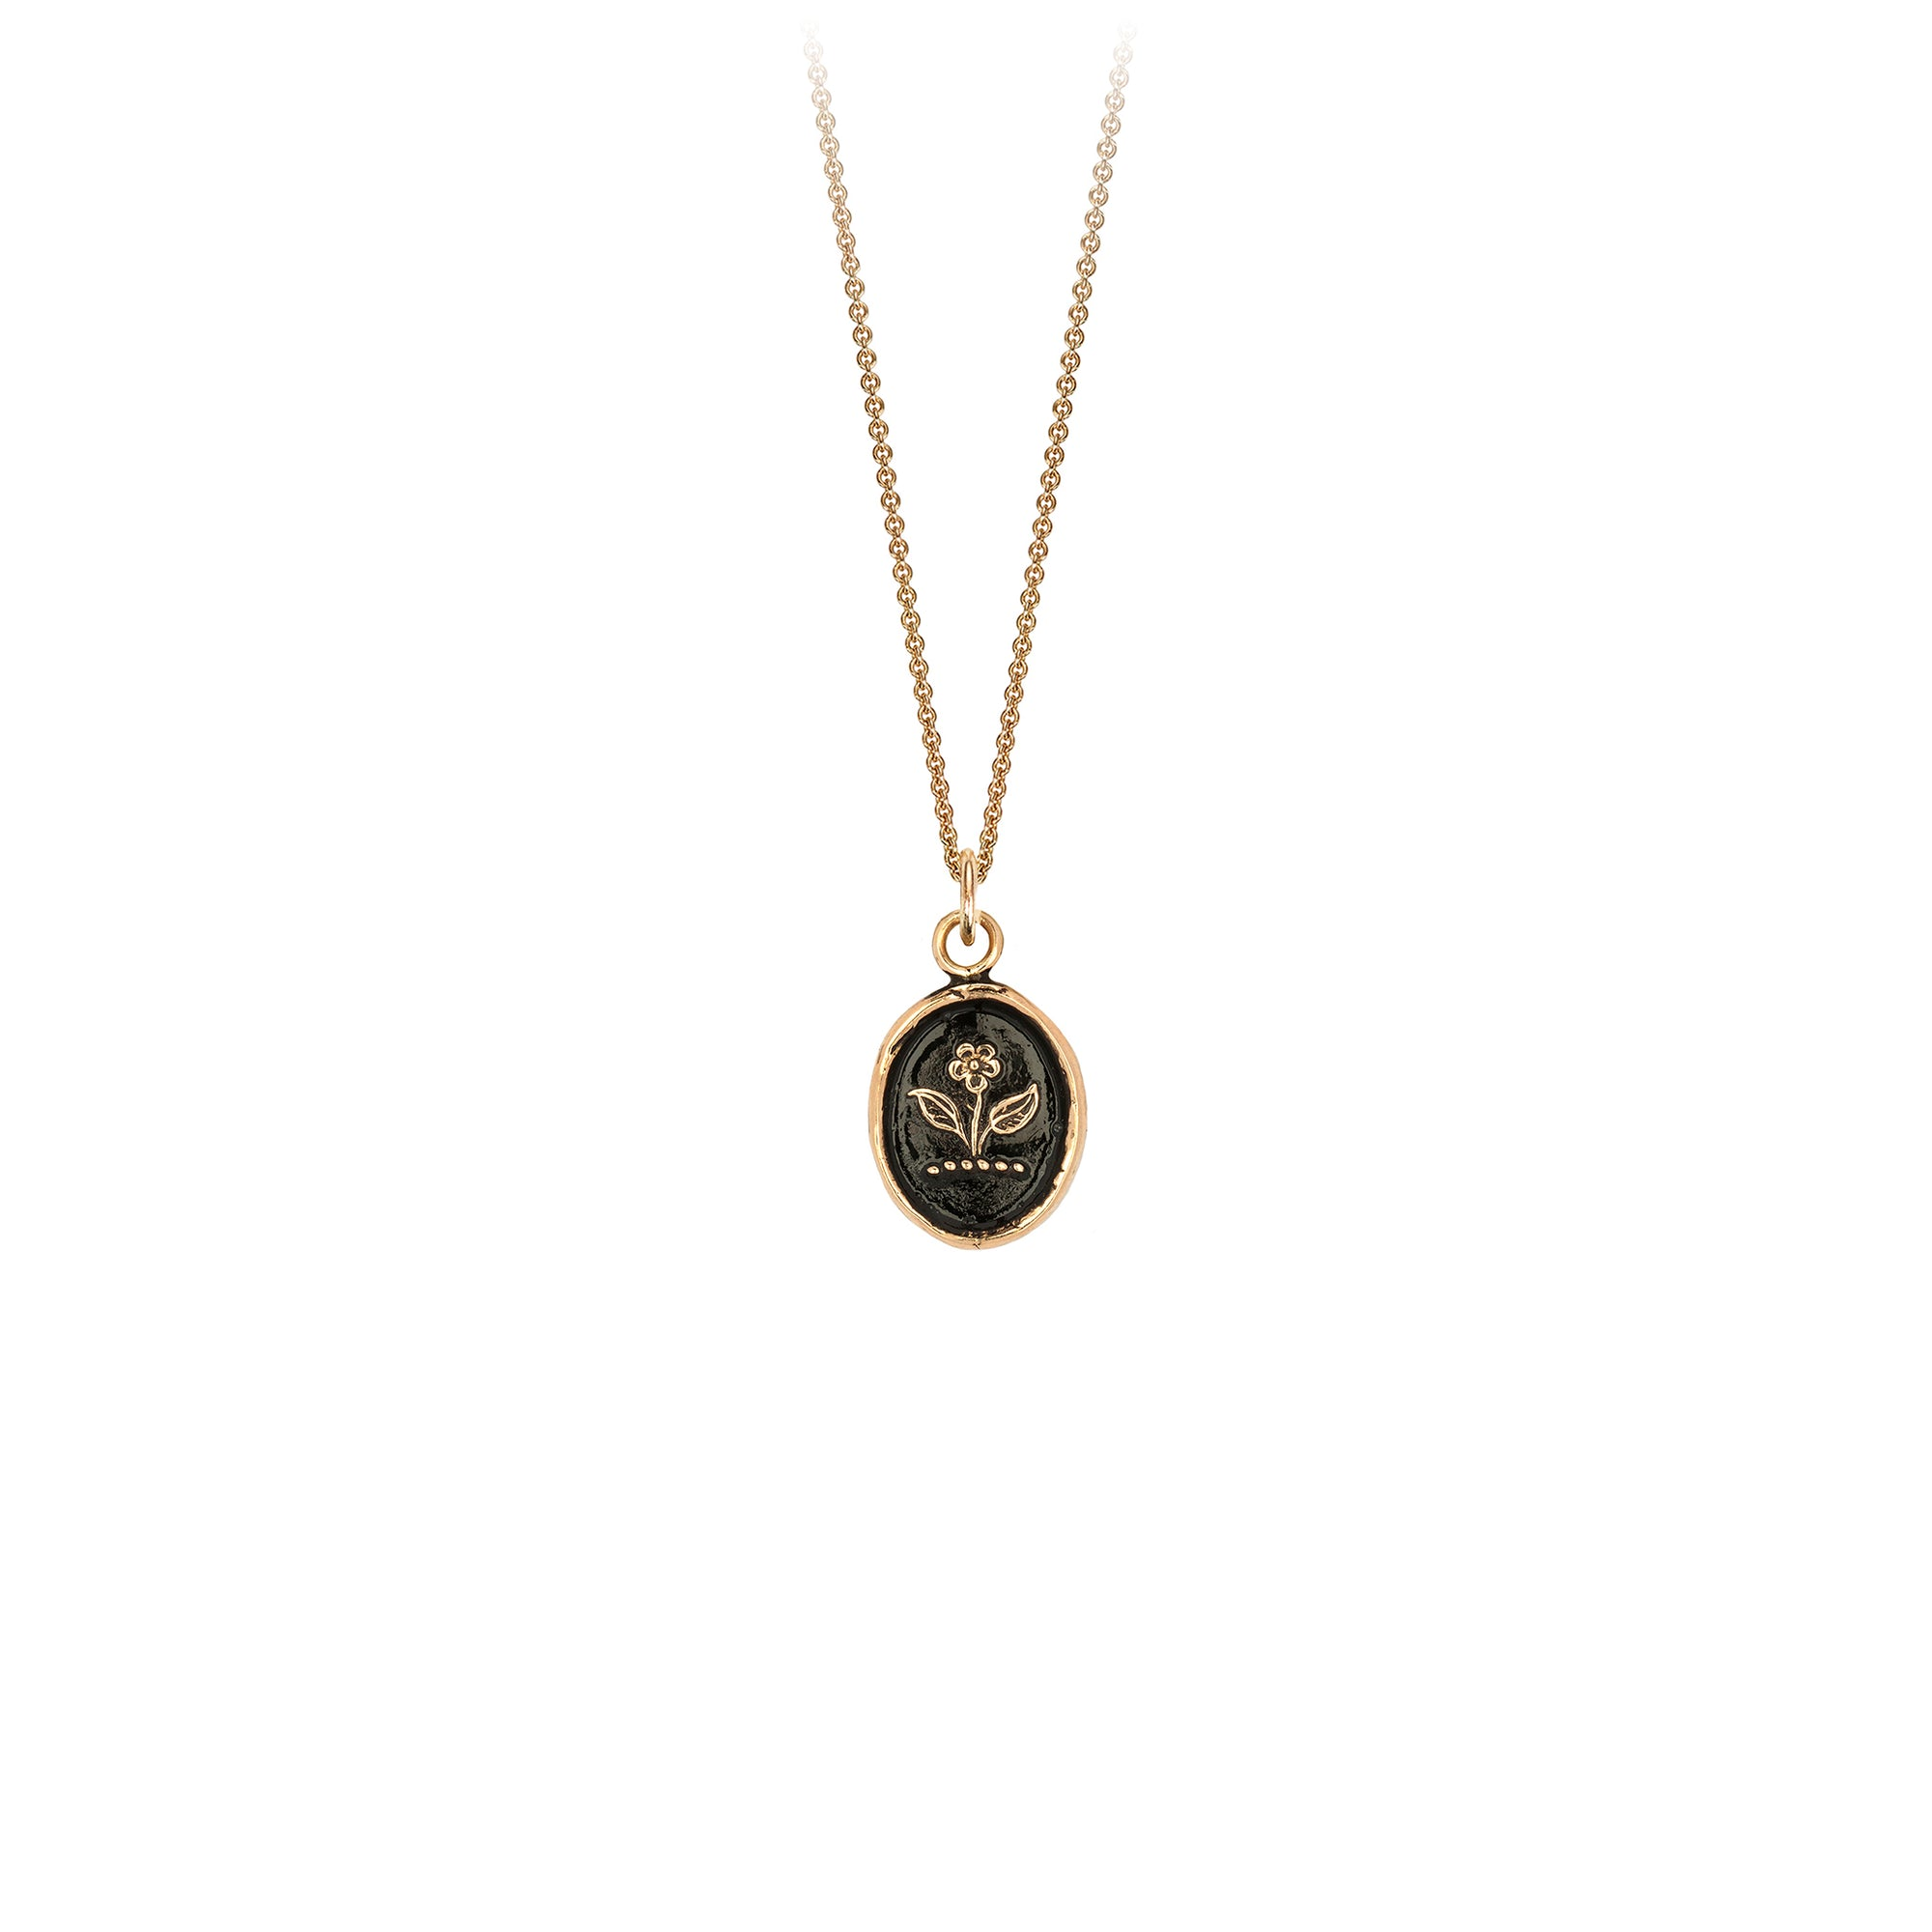 Pyrrha Beauty & Strength 14K Gold Talisman Necklace